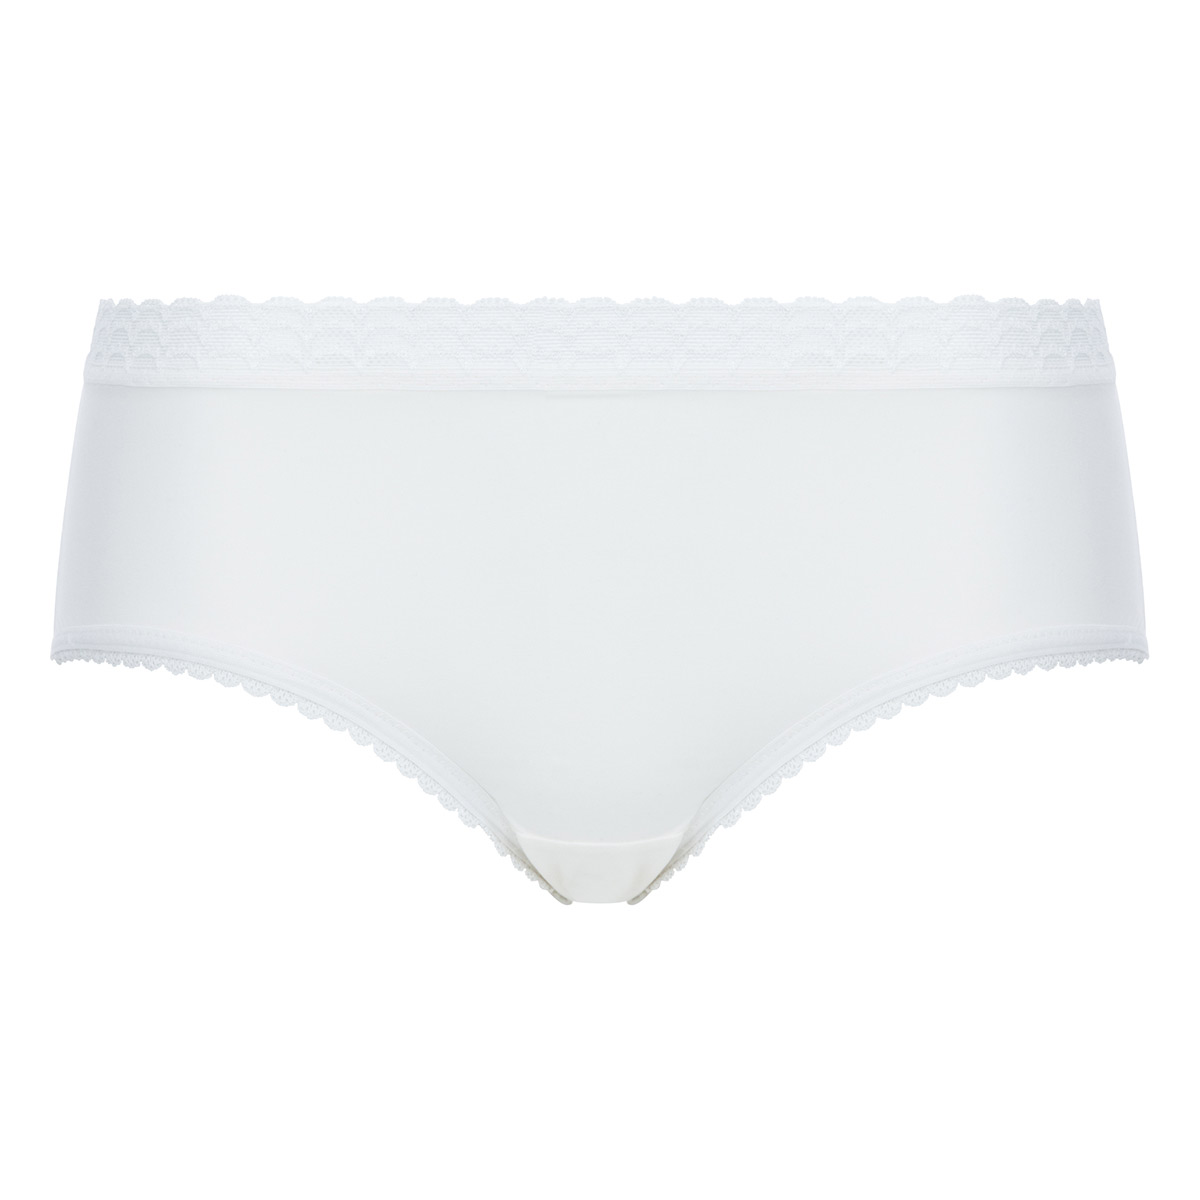 Midi Knickers in Antique White Lace - Invisible Elegance, , PLAYTEX